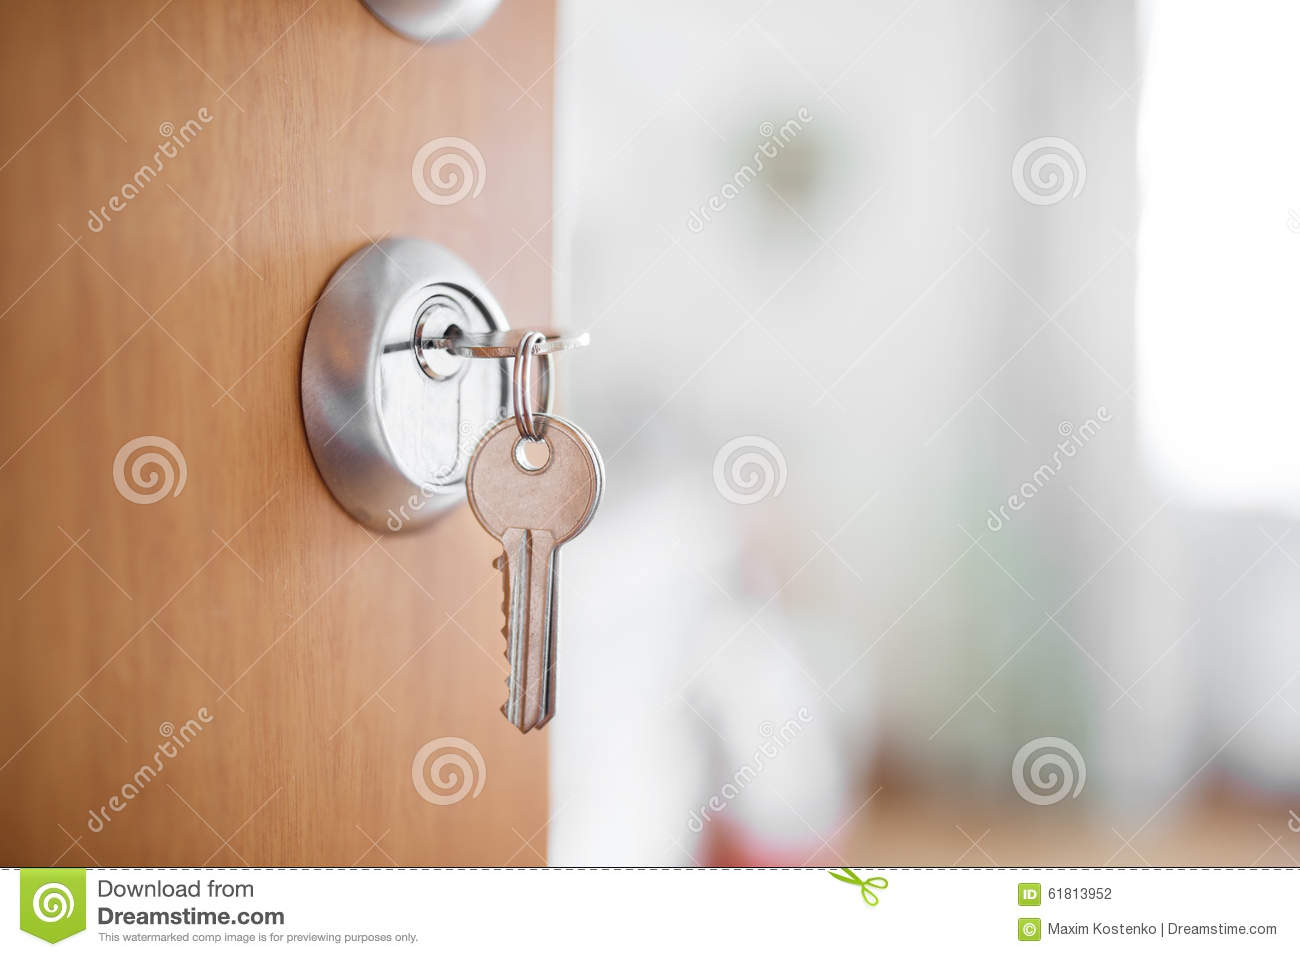 Bedroom Door Emergency Key Open Door With Keys Key In Keyhole Stock Photo Image